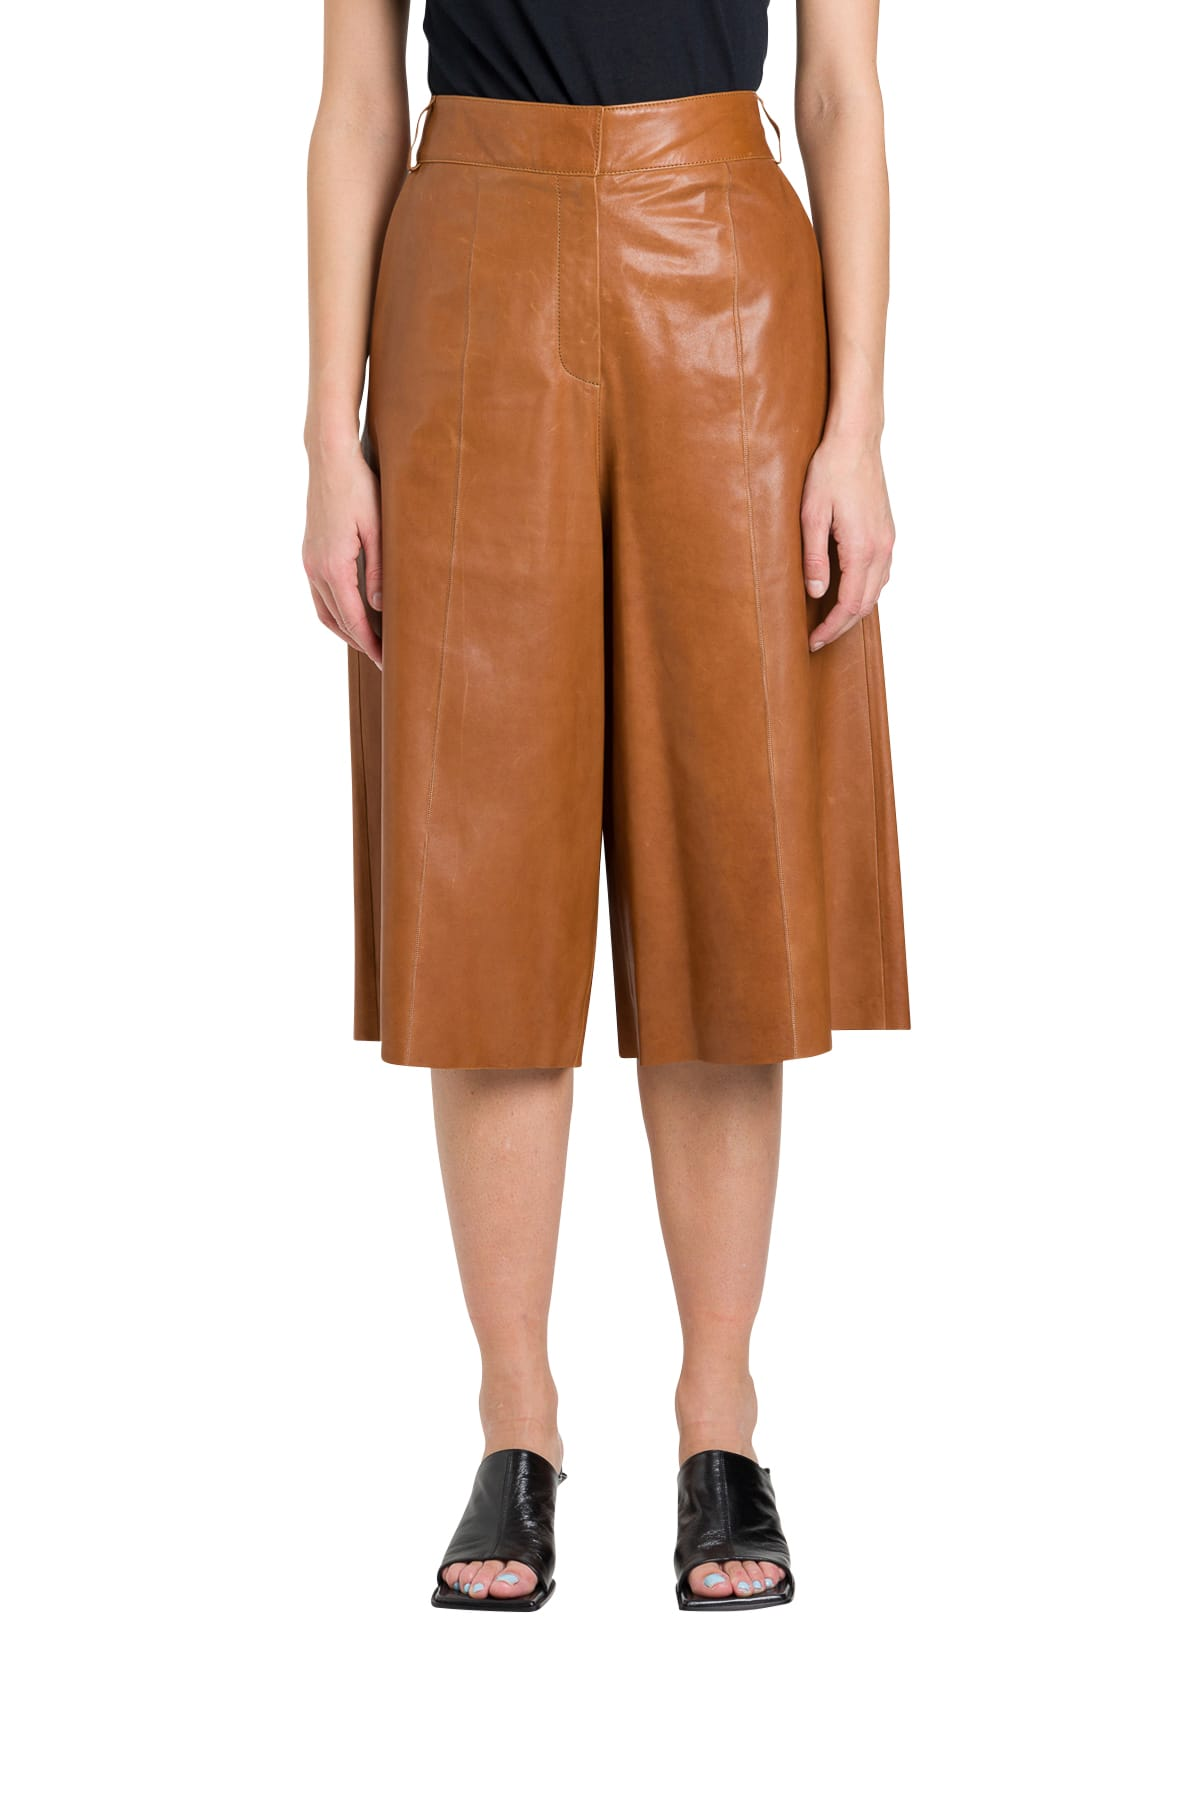 Arma Shorts LONG LEATHER SHORTS